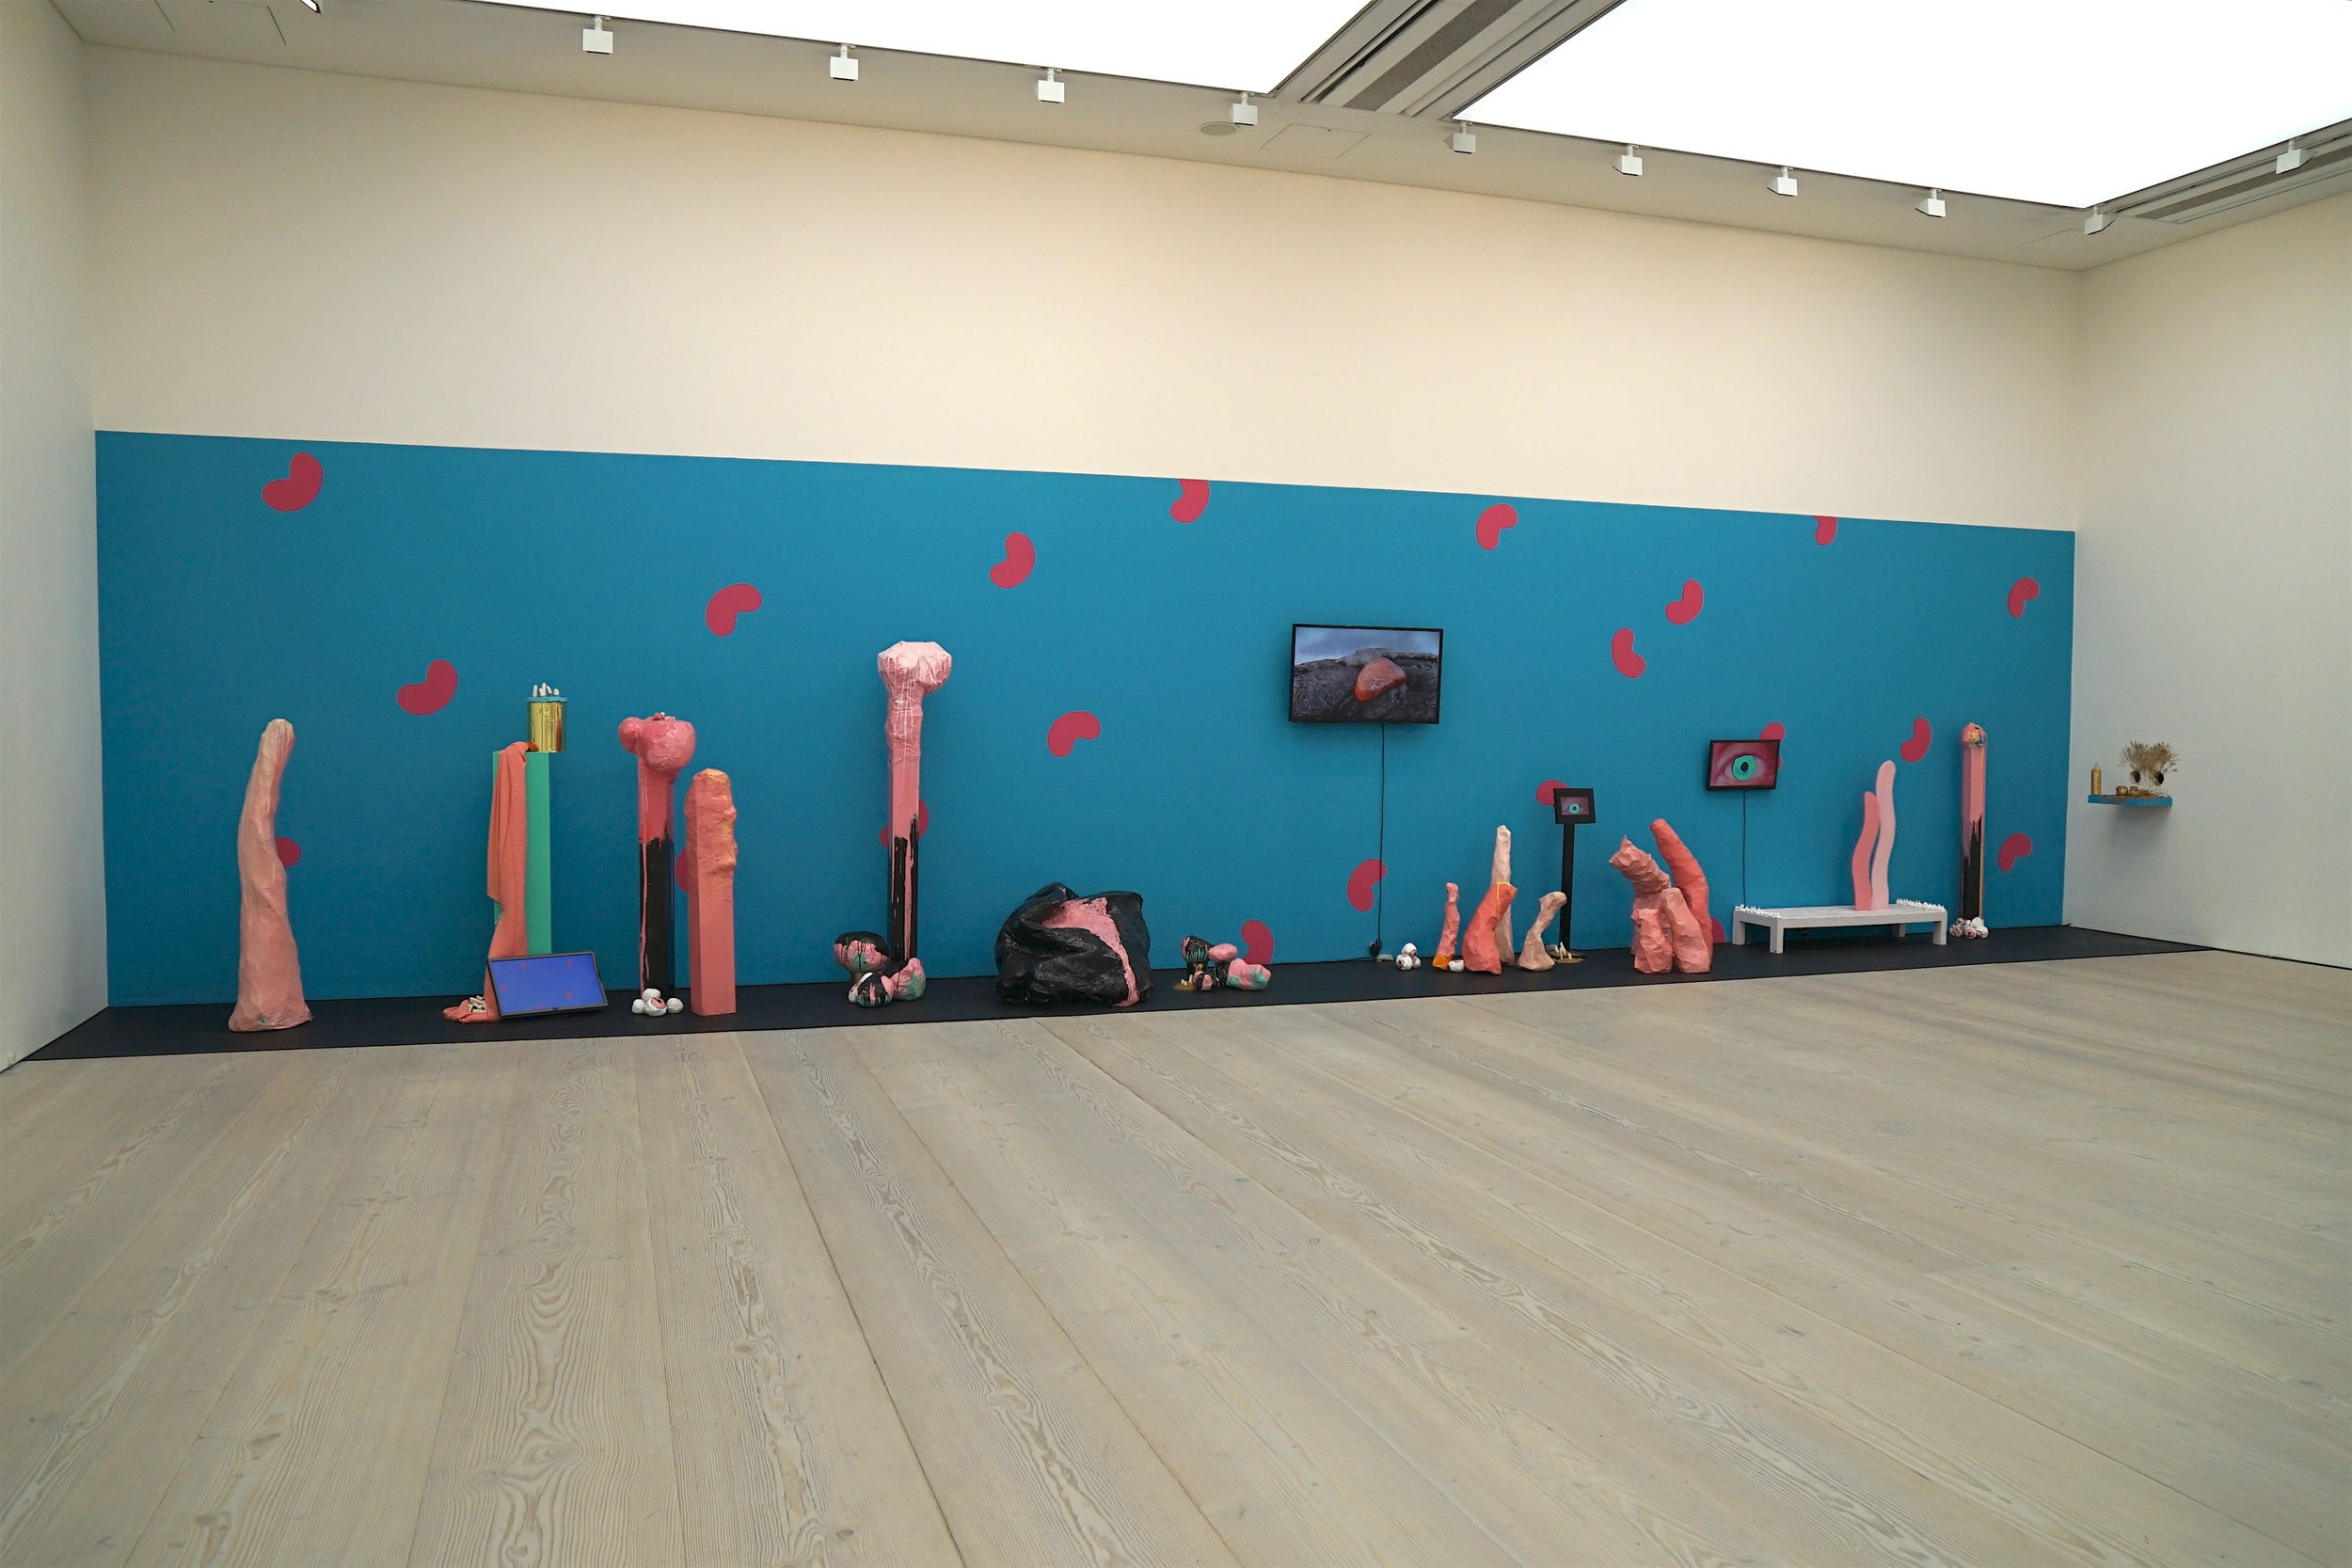 Till Death do us Party installed at Saatchi Gallery, 2015-16